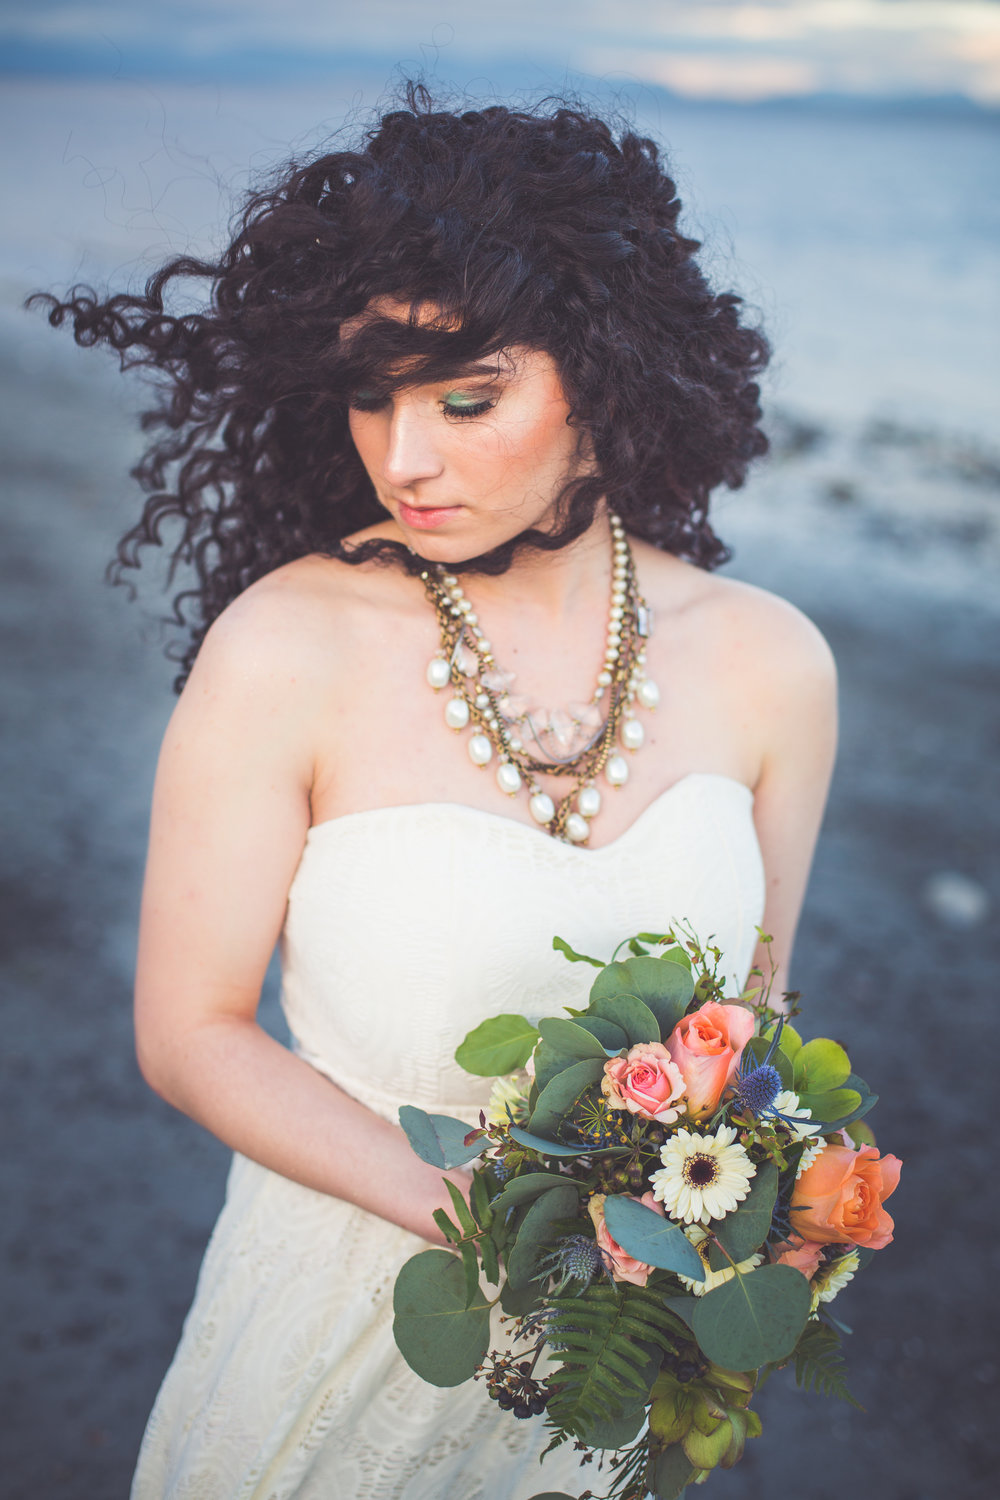 windblown hair on bride